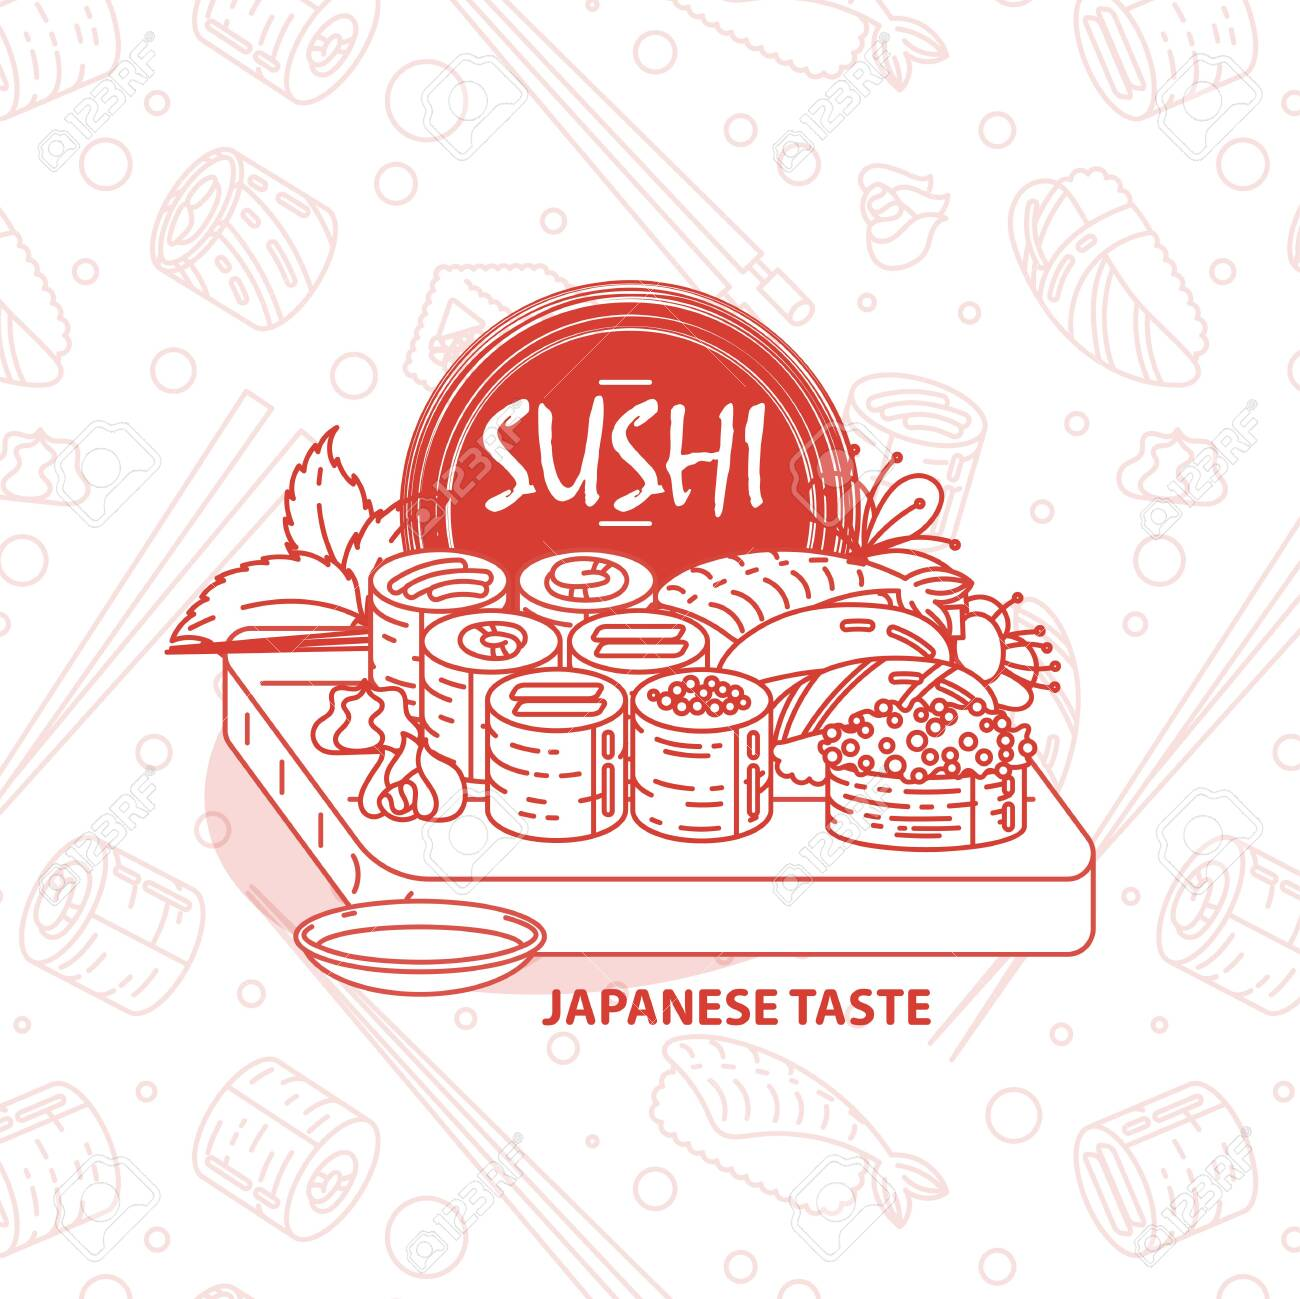 Sushi. Japanese food. Rolls with fish and caviar on eco plate, chopsticks, ginger and soy sauce. Delicious vector illustration for restaurant and bar menu, booklets or prints - 150659911